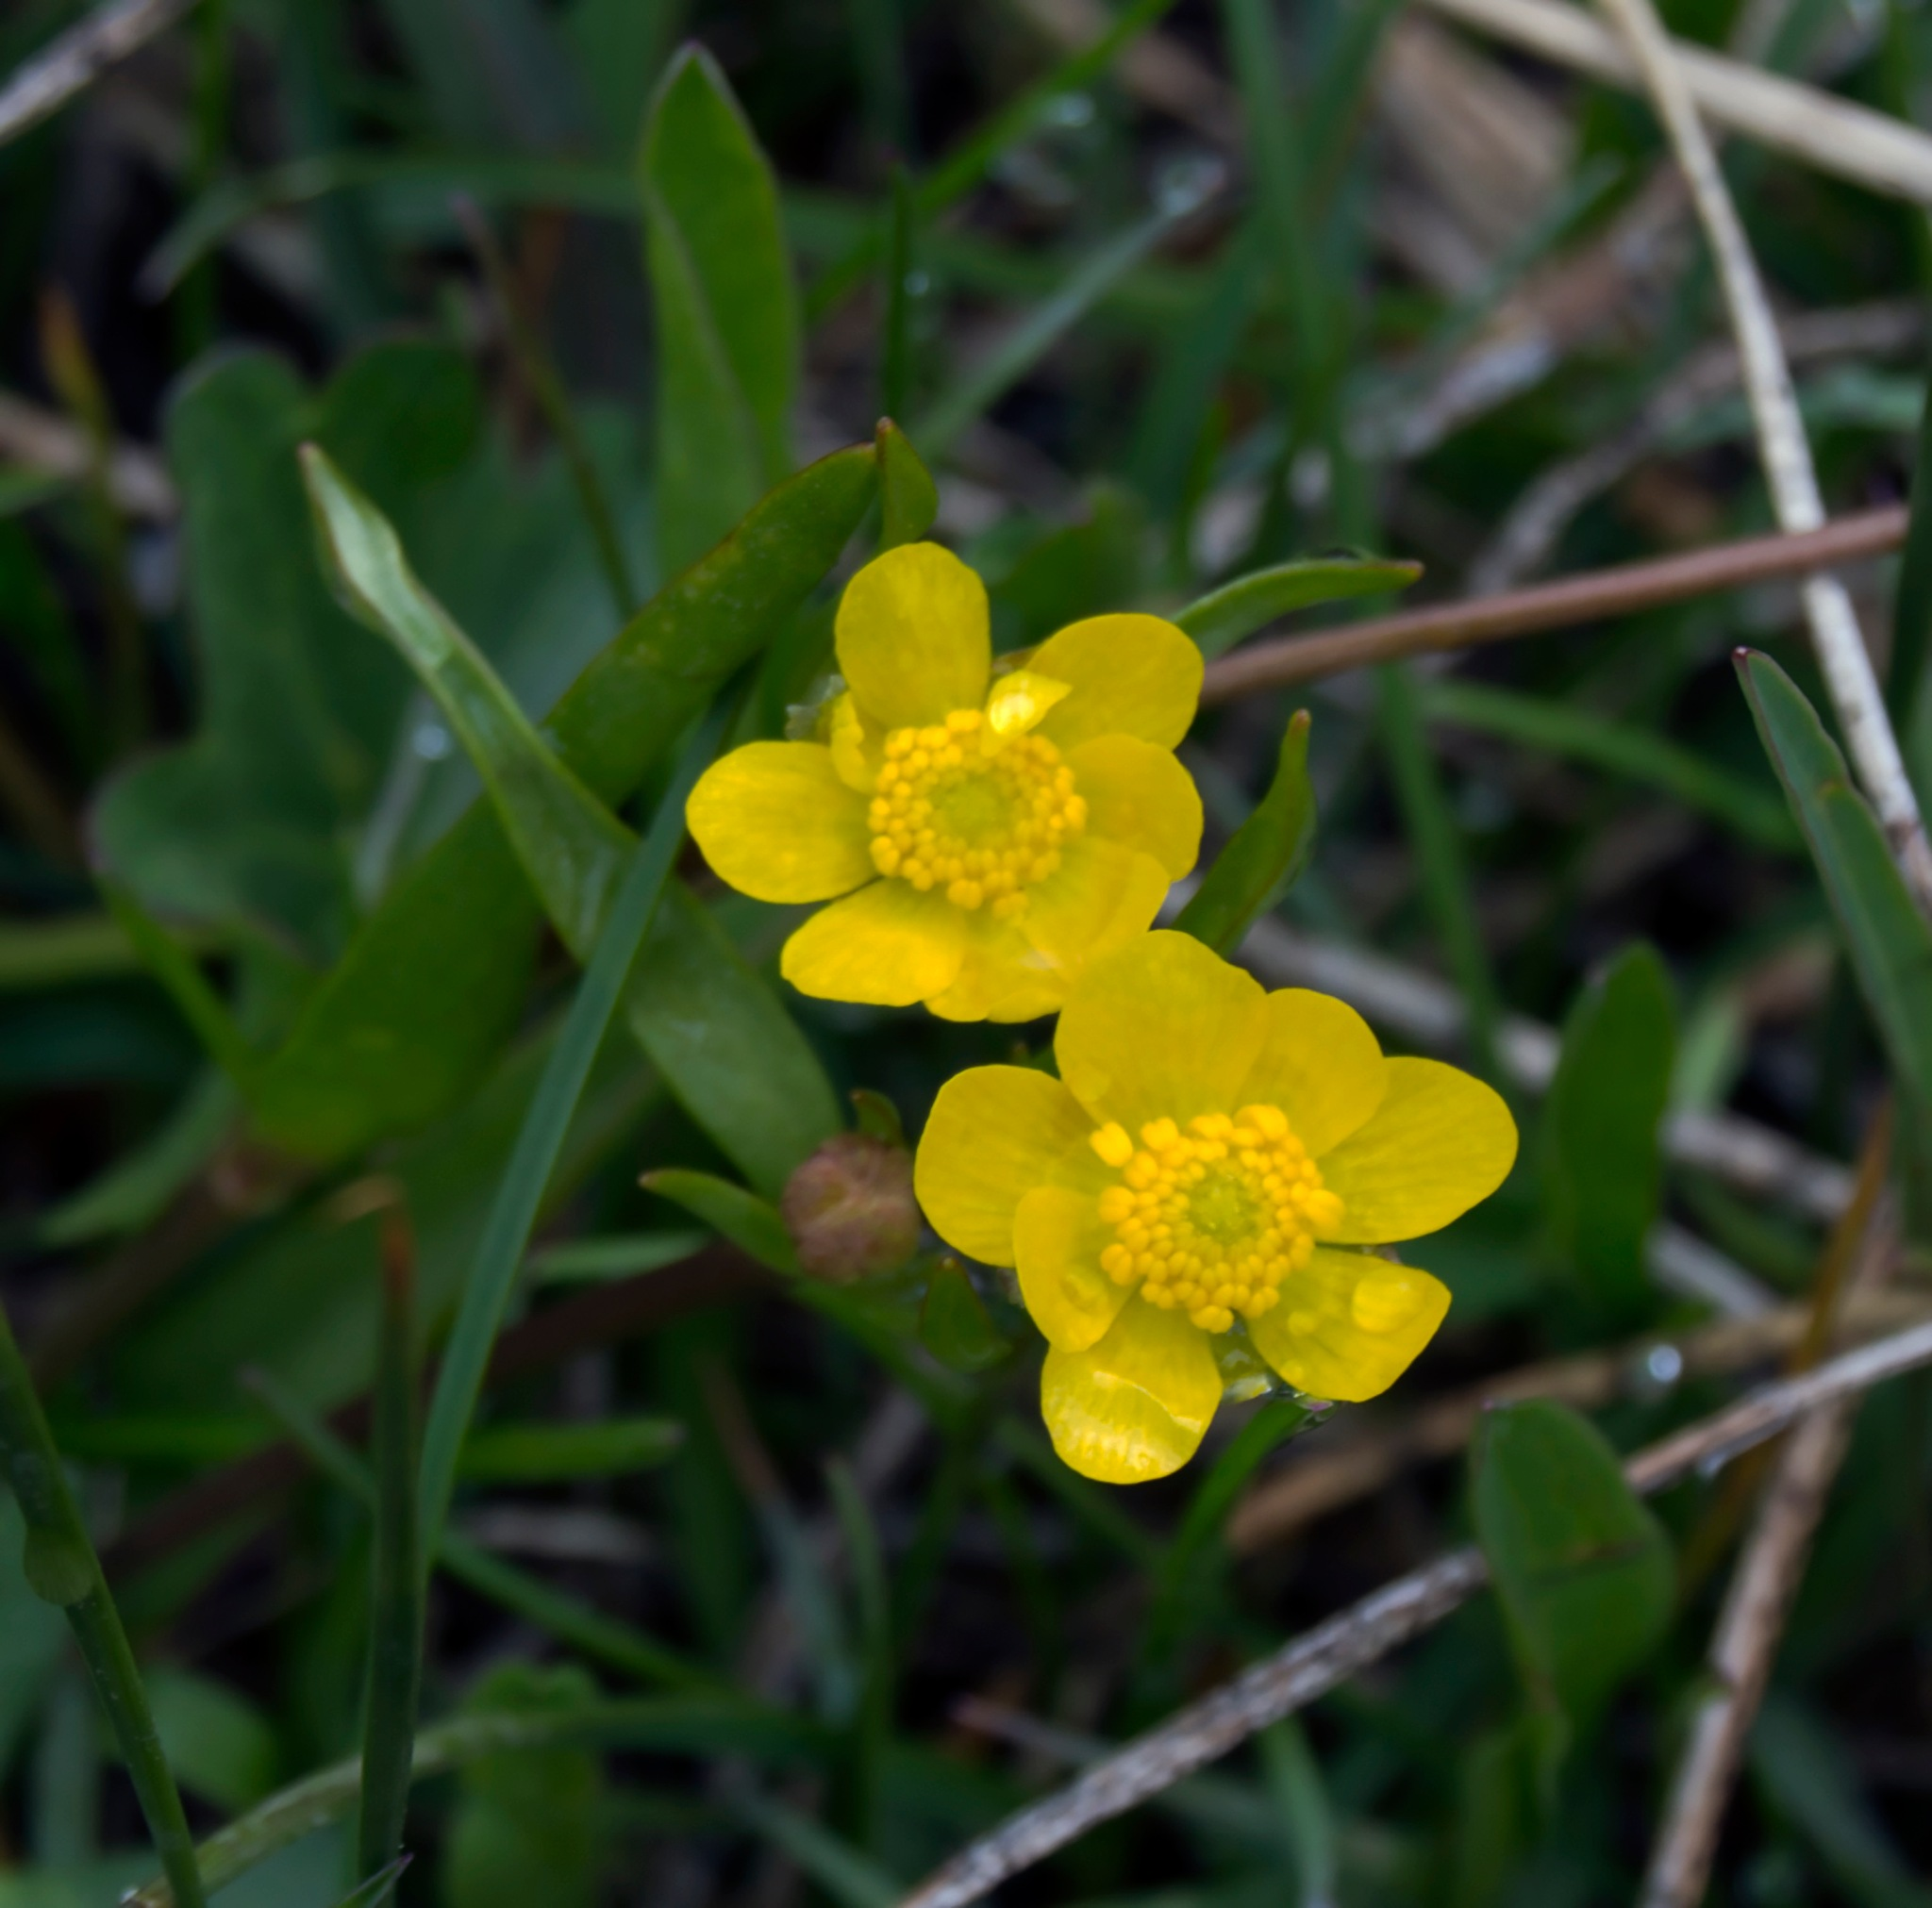 Buttercups by Neal Lacroix